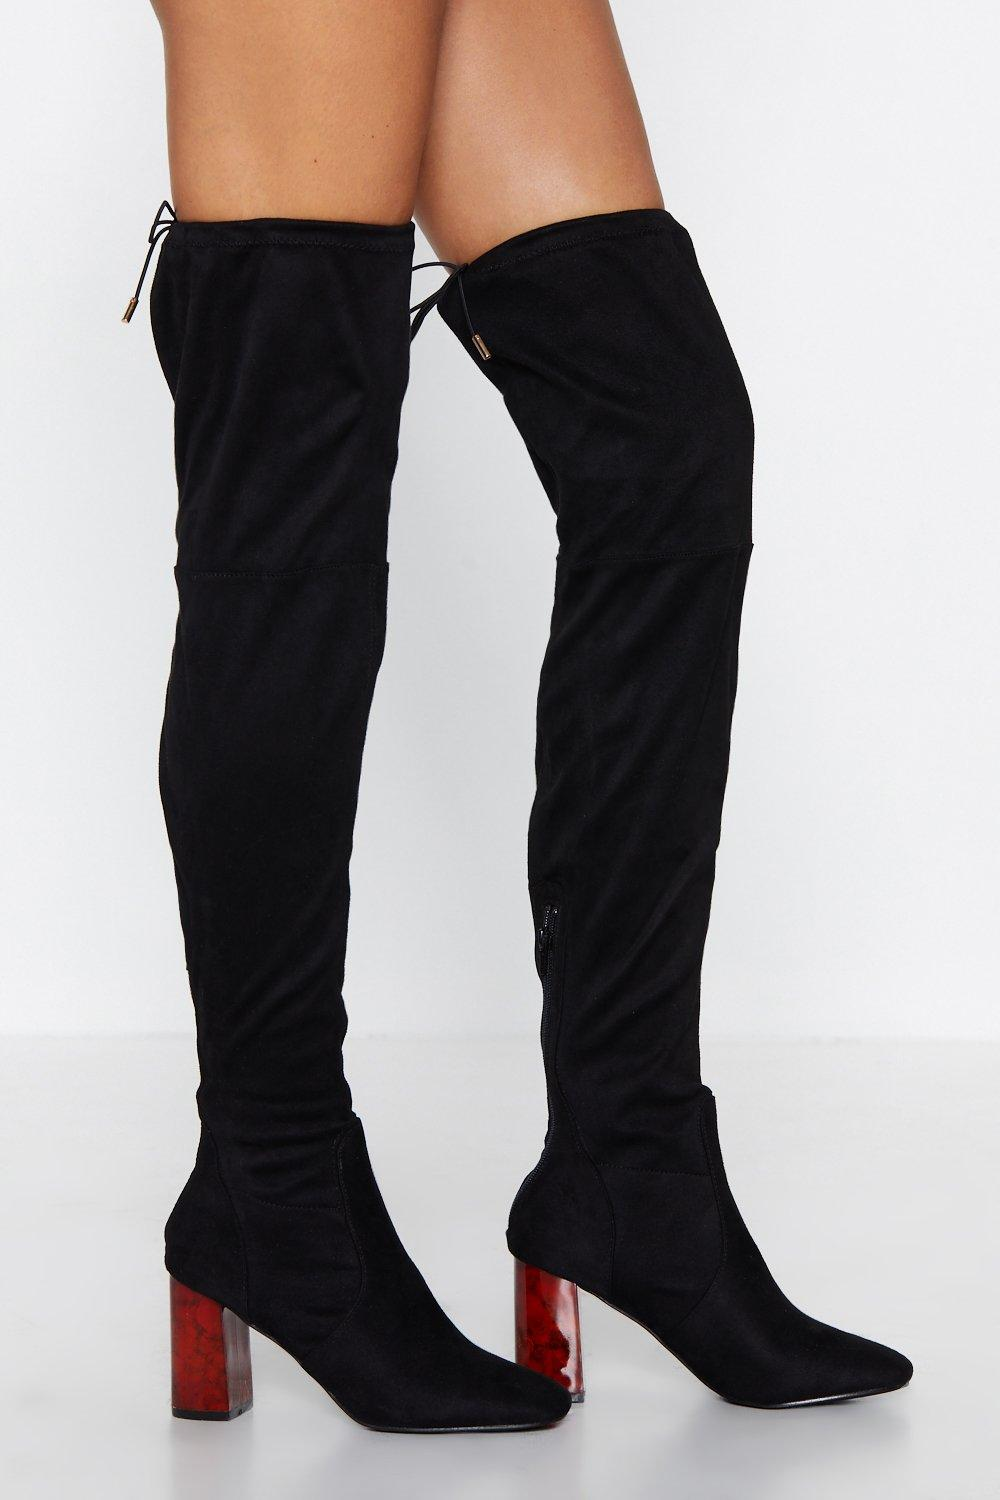 provide plenty of highly coveted range of best selection of Tort New Shoes Thigh-High Boot | Shop Clothes at Nasty Gal!